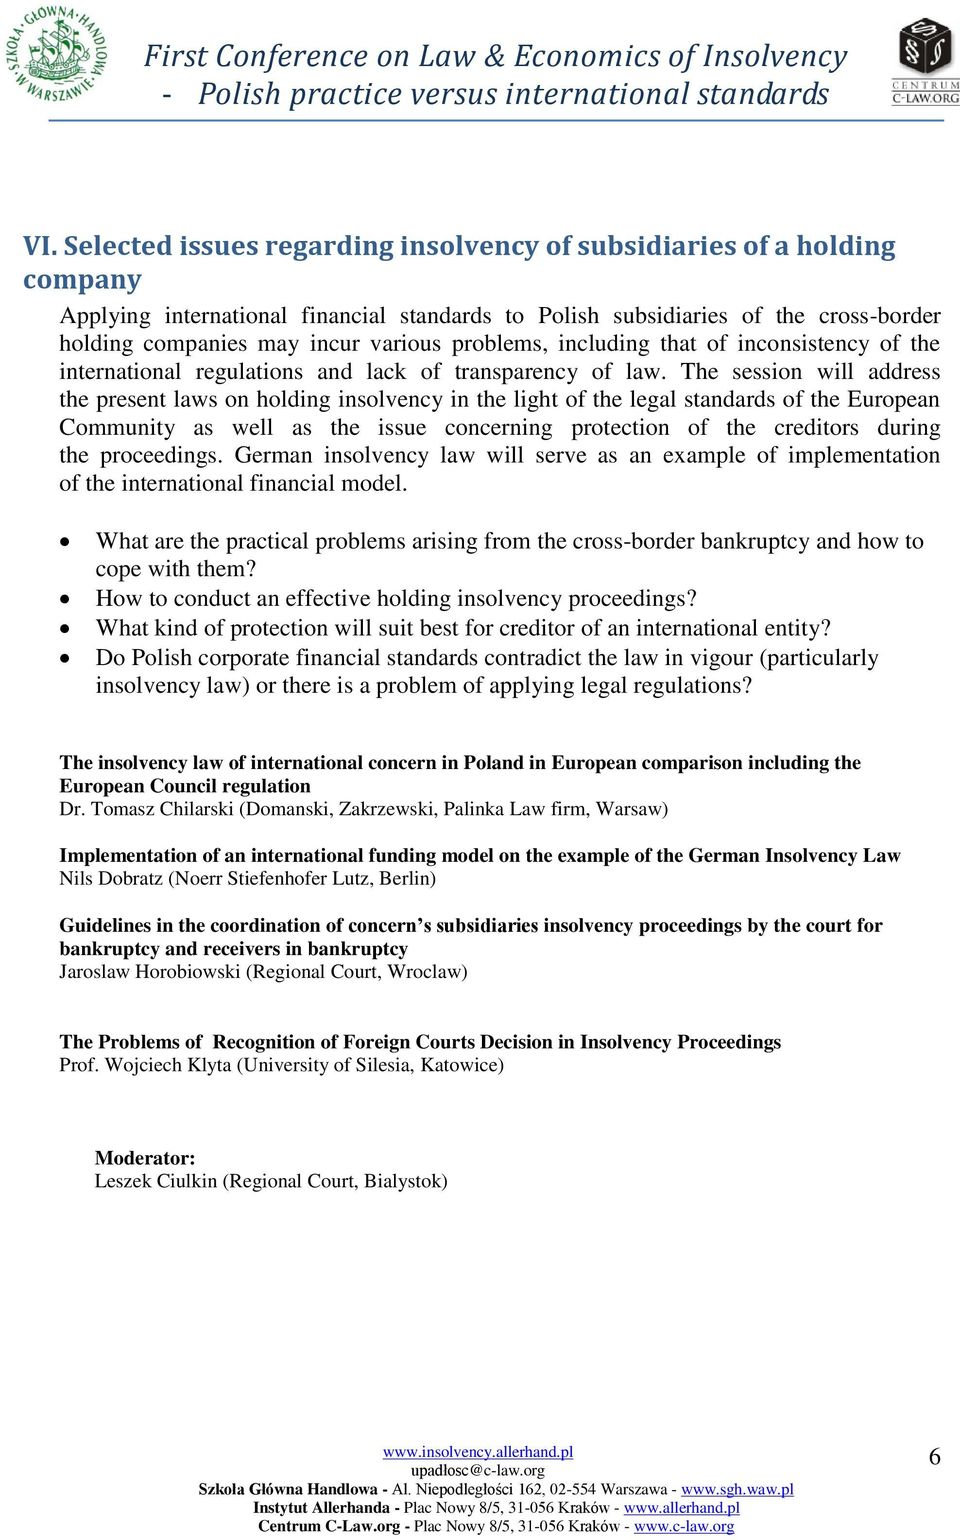 The session will address the present laws on holding insolvency in the light of the legal standards of the European Community as well as the issue concerning protection of the creditors during the